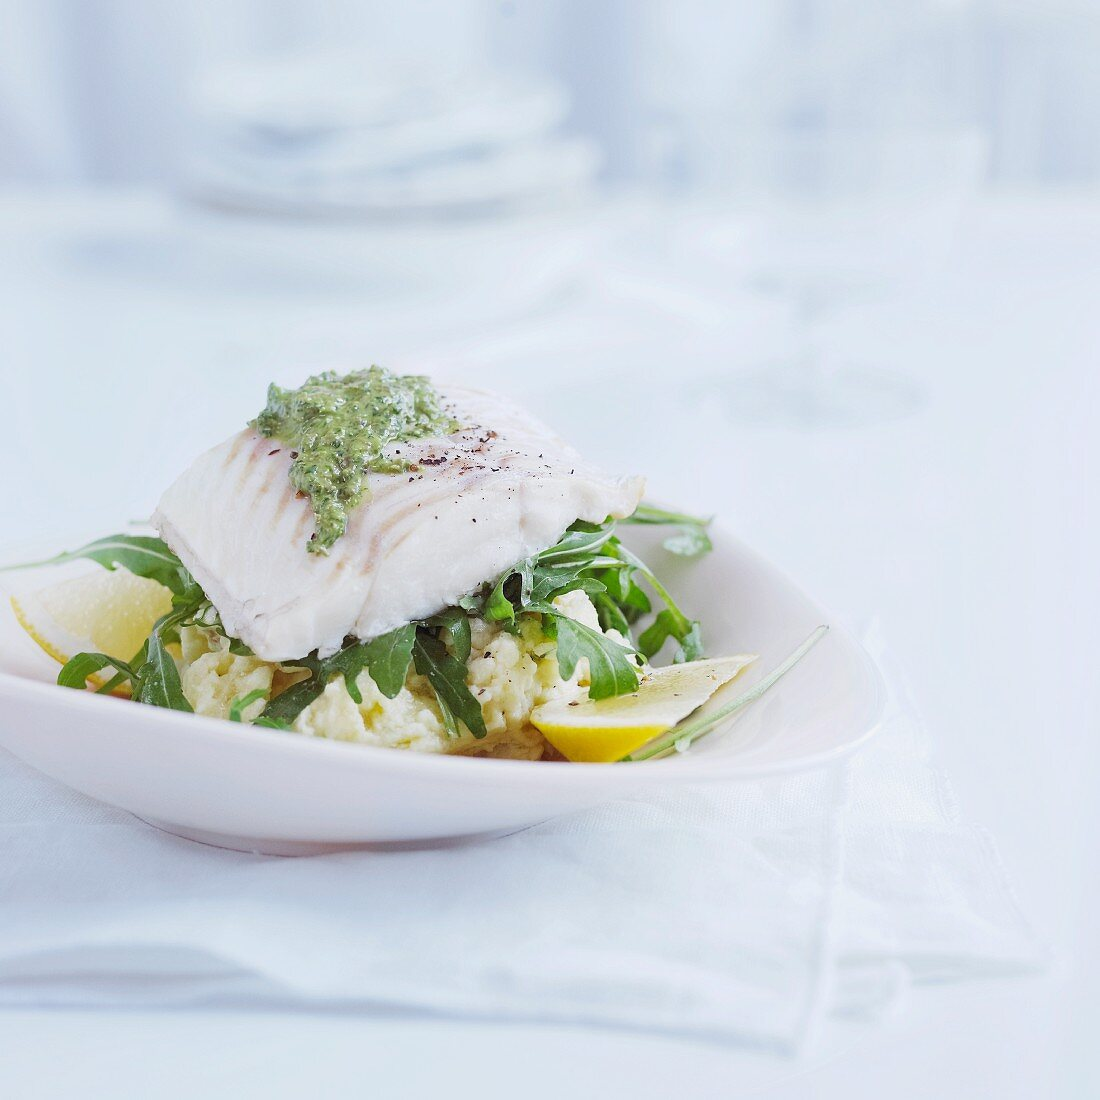 Cod fillit with green sauce on a bed of garlic mashed potatoes